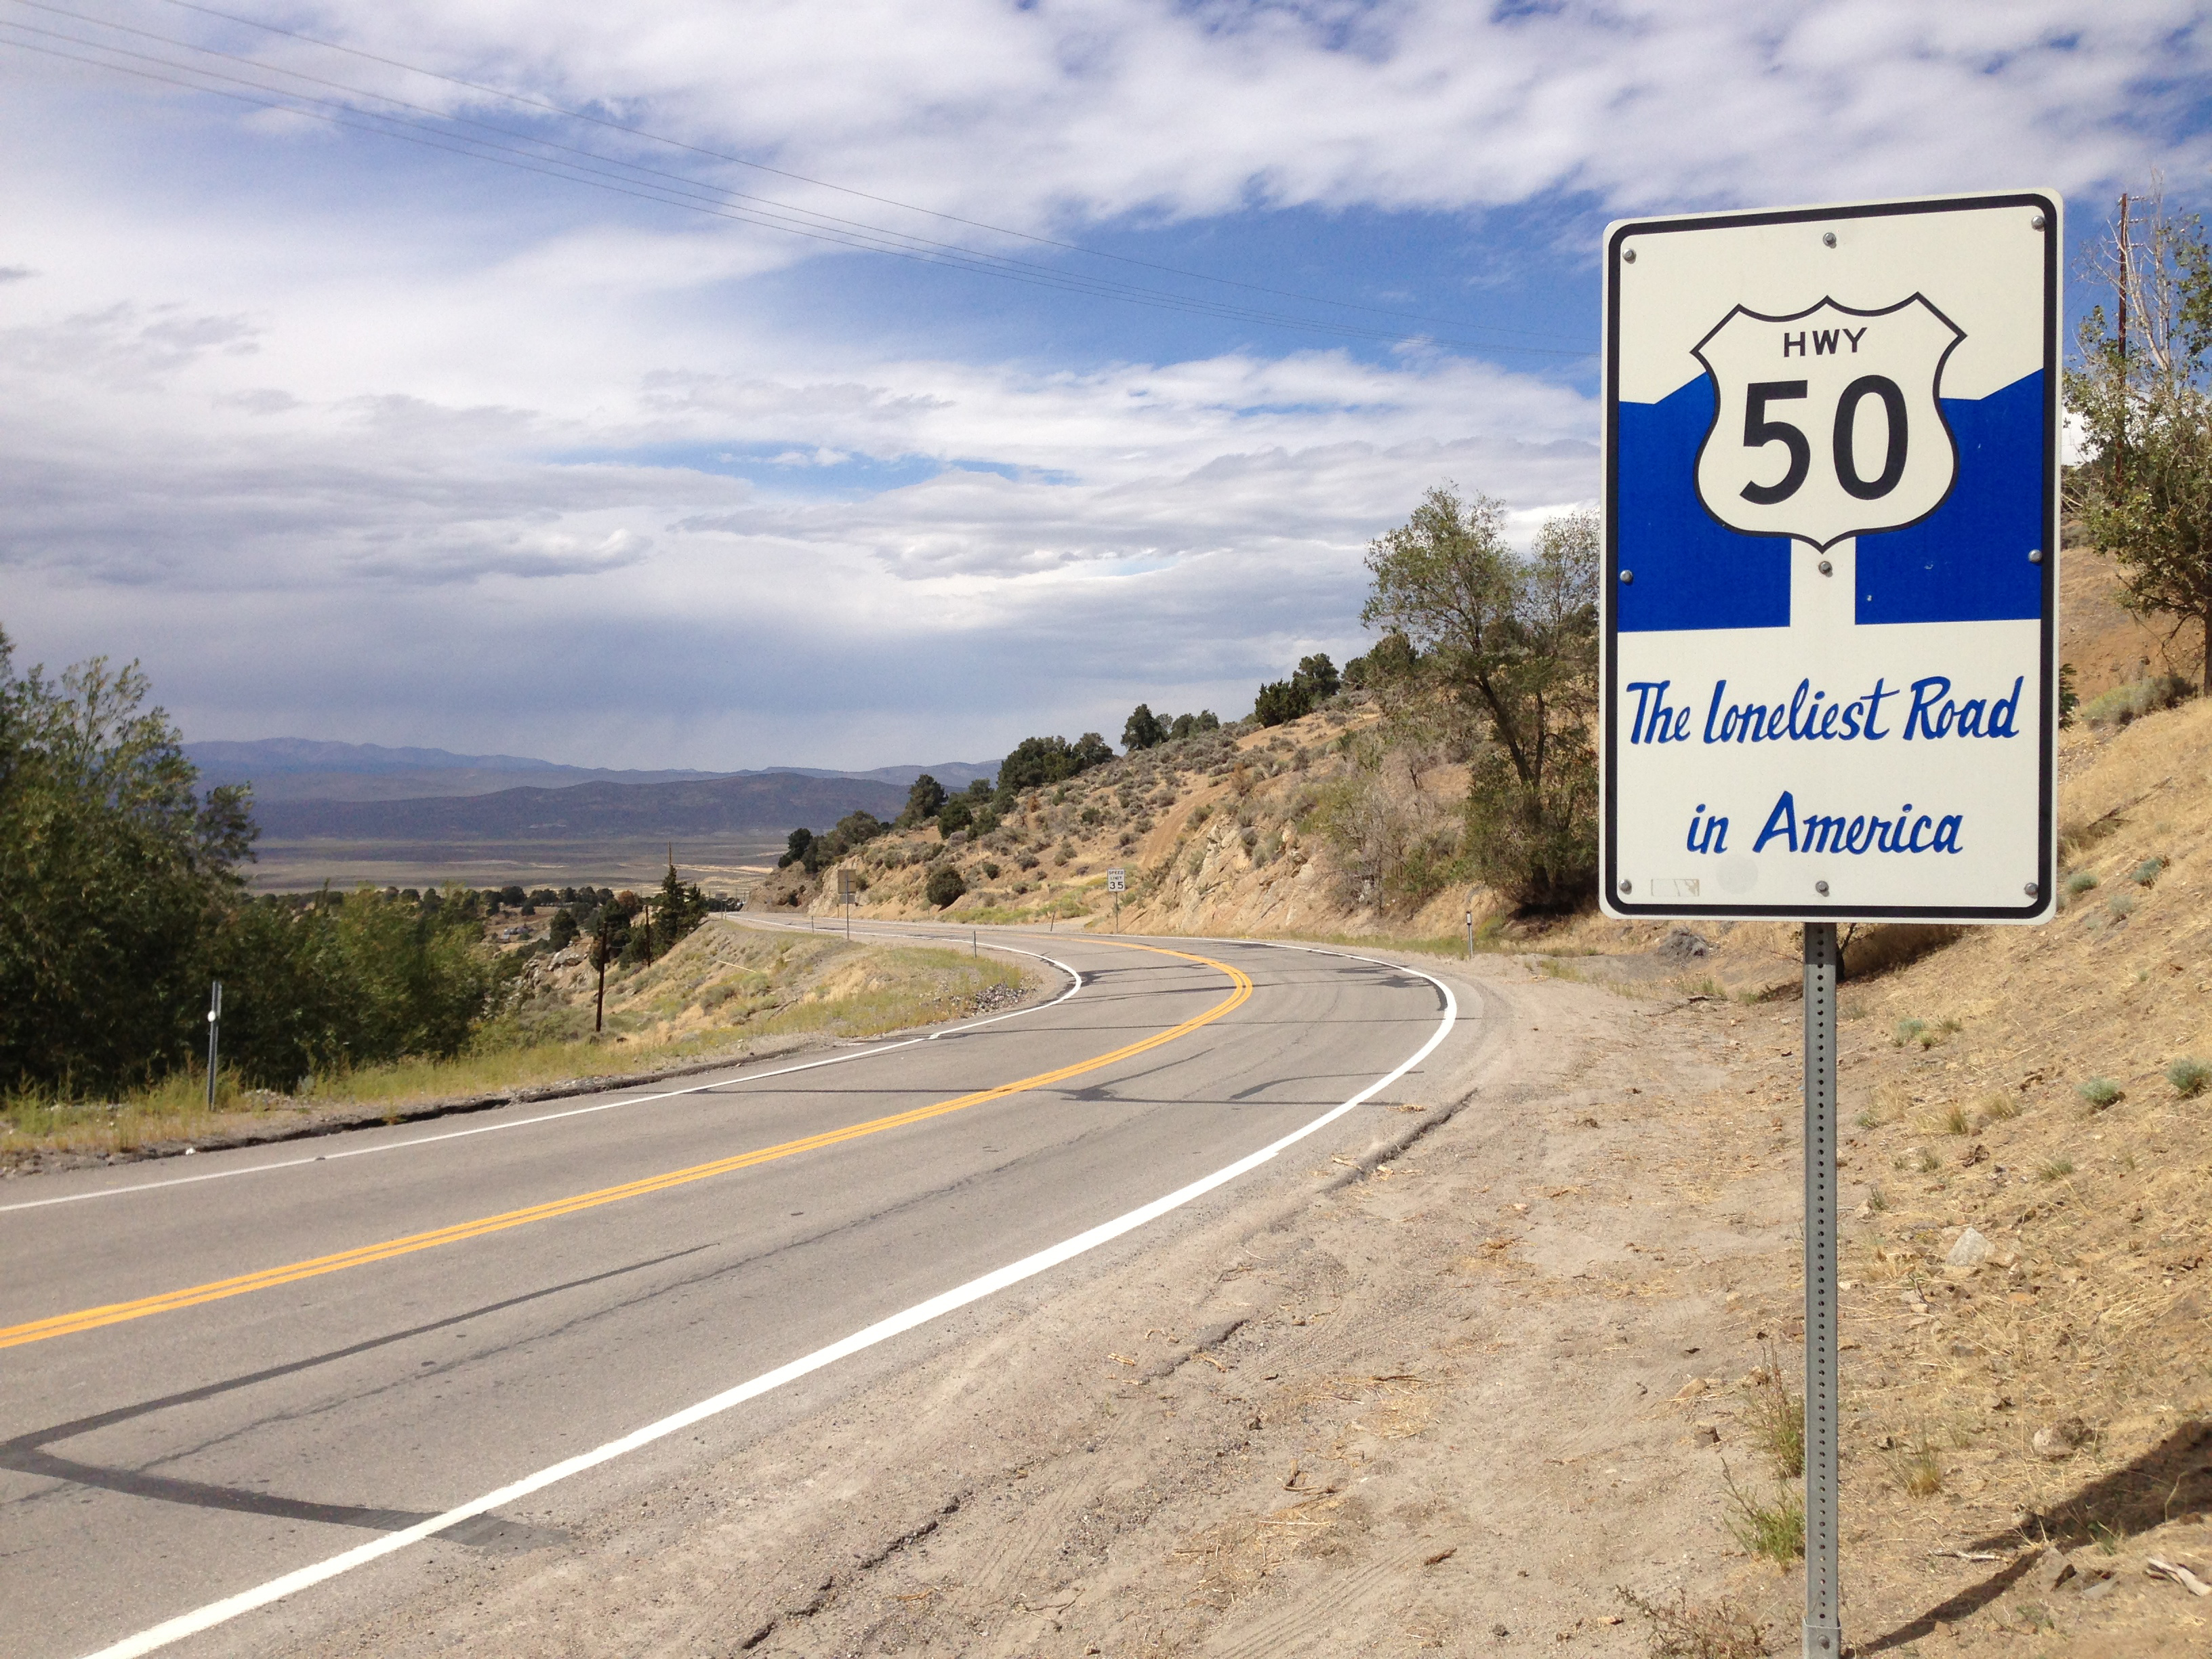 nevada state highway map with File 2014 09 08 13 29 07  22hwy 50   The Loneliest Road In America 22 Sign Along Westbound U S  Route 50 About 23 8 Miles East Of The Churchill County Line In Austin  Nevada on 3129977842 furthermore Oregon Road Map moreover Where Is Chicago On The Us Map in addition Utah map likewise File 2014 09 08 13 29 07  22HWY 50   The Loneliest Road in America 22 sign along westbound U S  Route 50 about 23 8 miles east of the Churchill County line in Austin  Nevada.